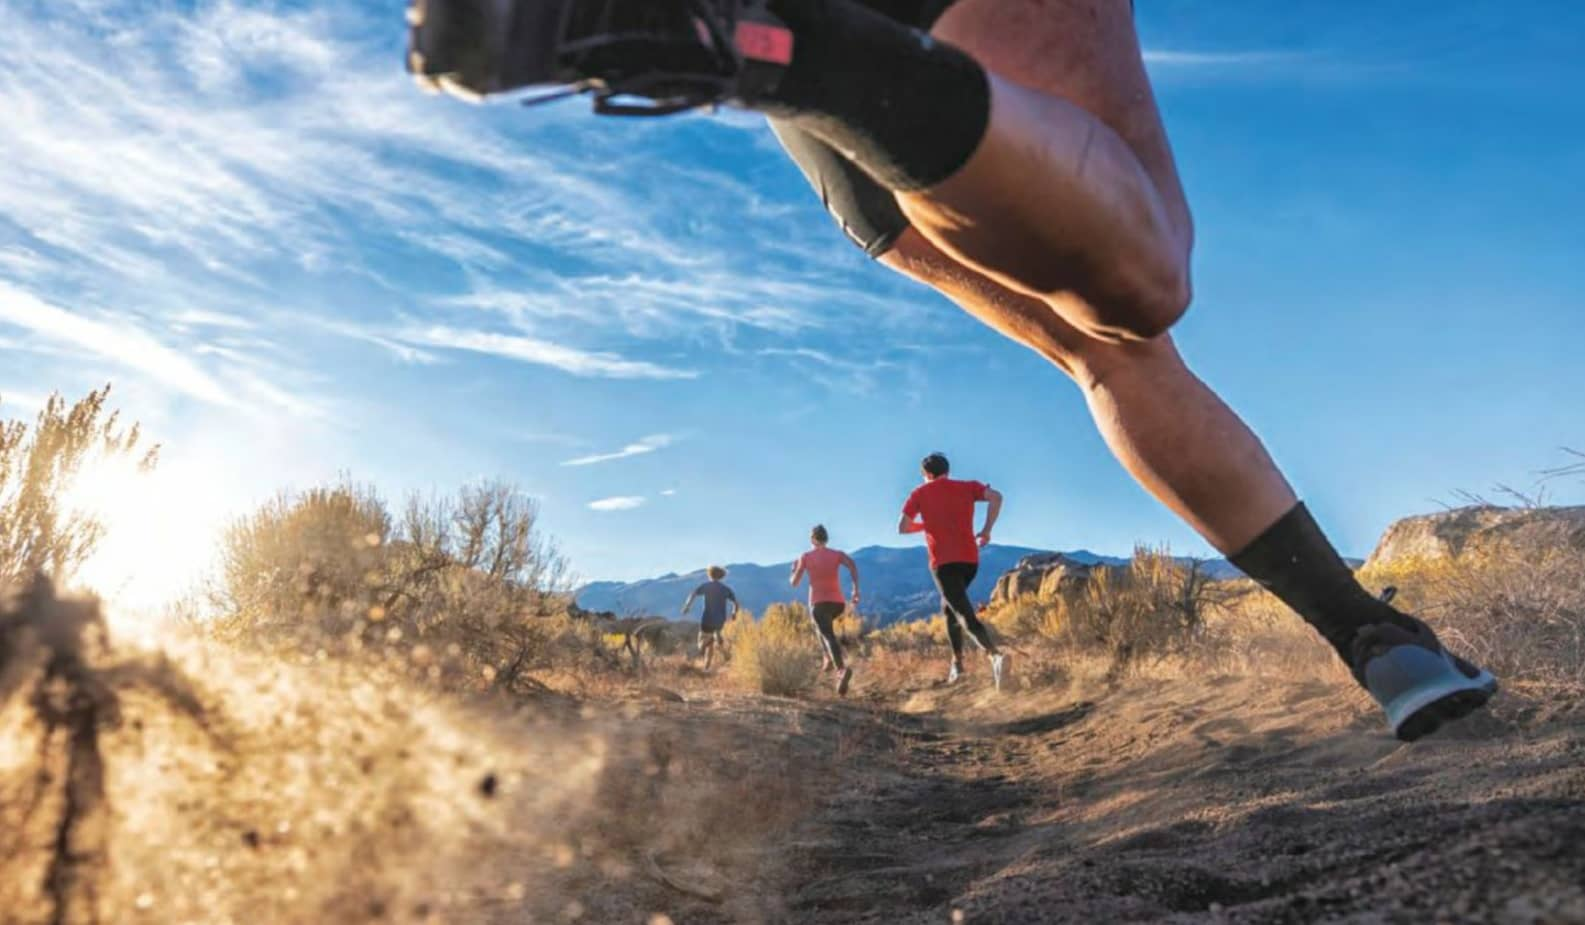 How To Take Great Trail Photos On The Run